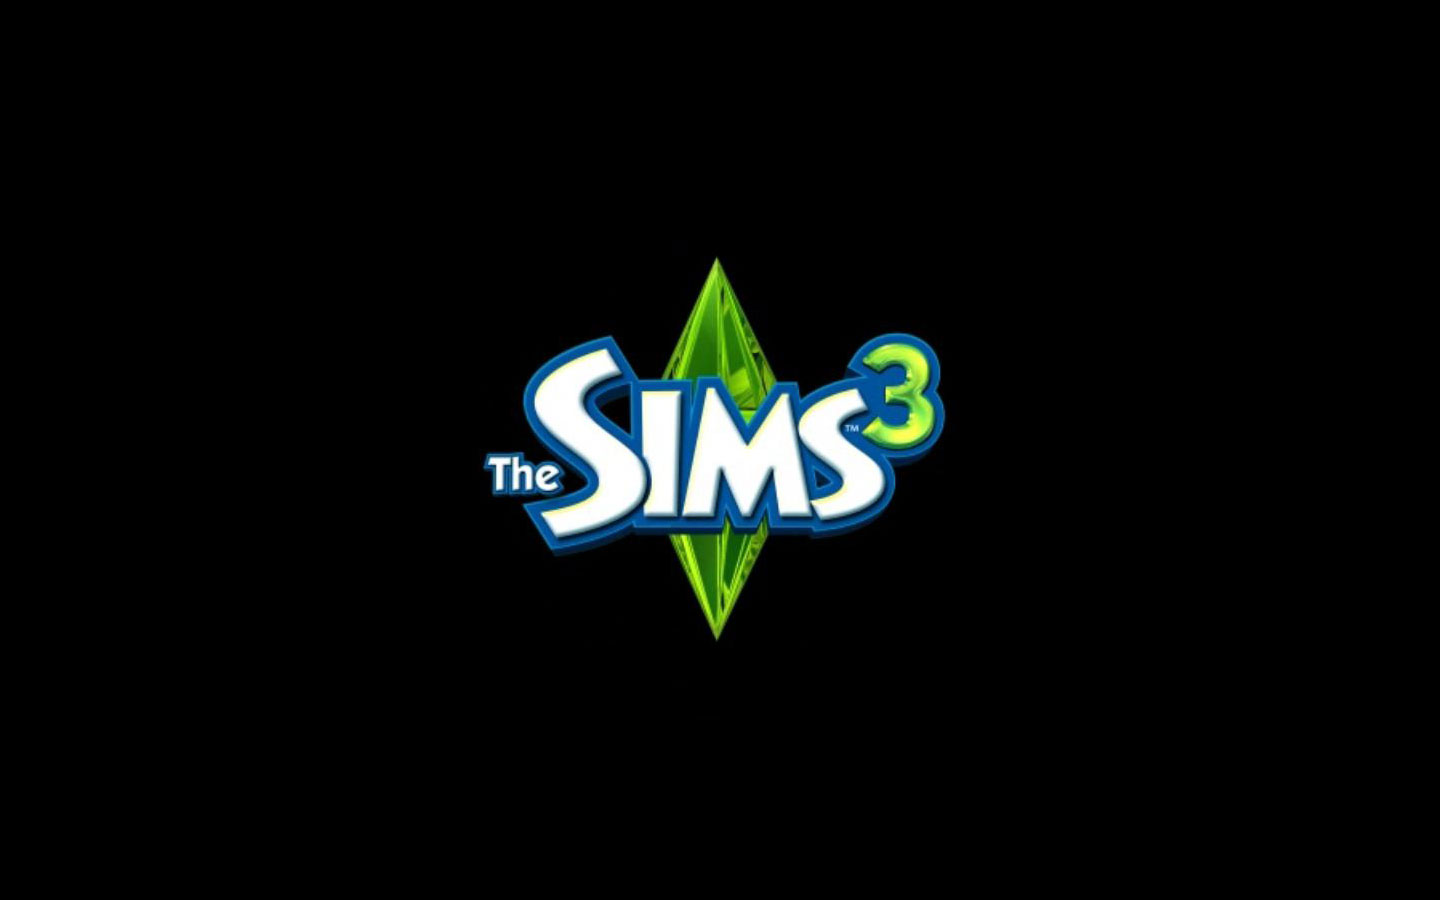 Wallpapers   The Sims 3 wallpaper 1440x900